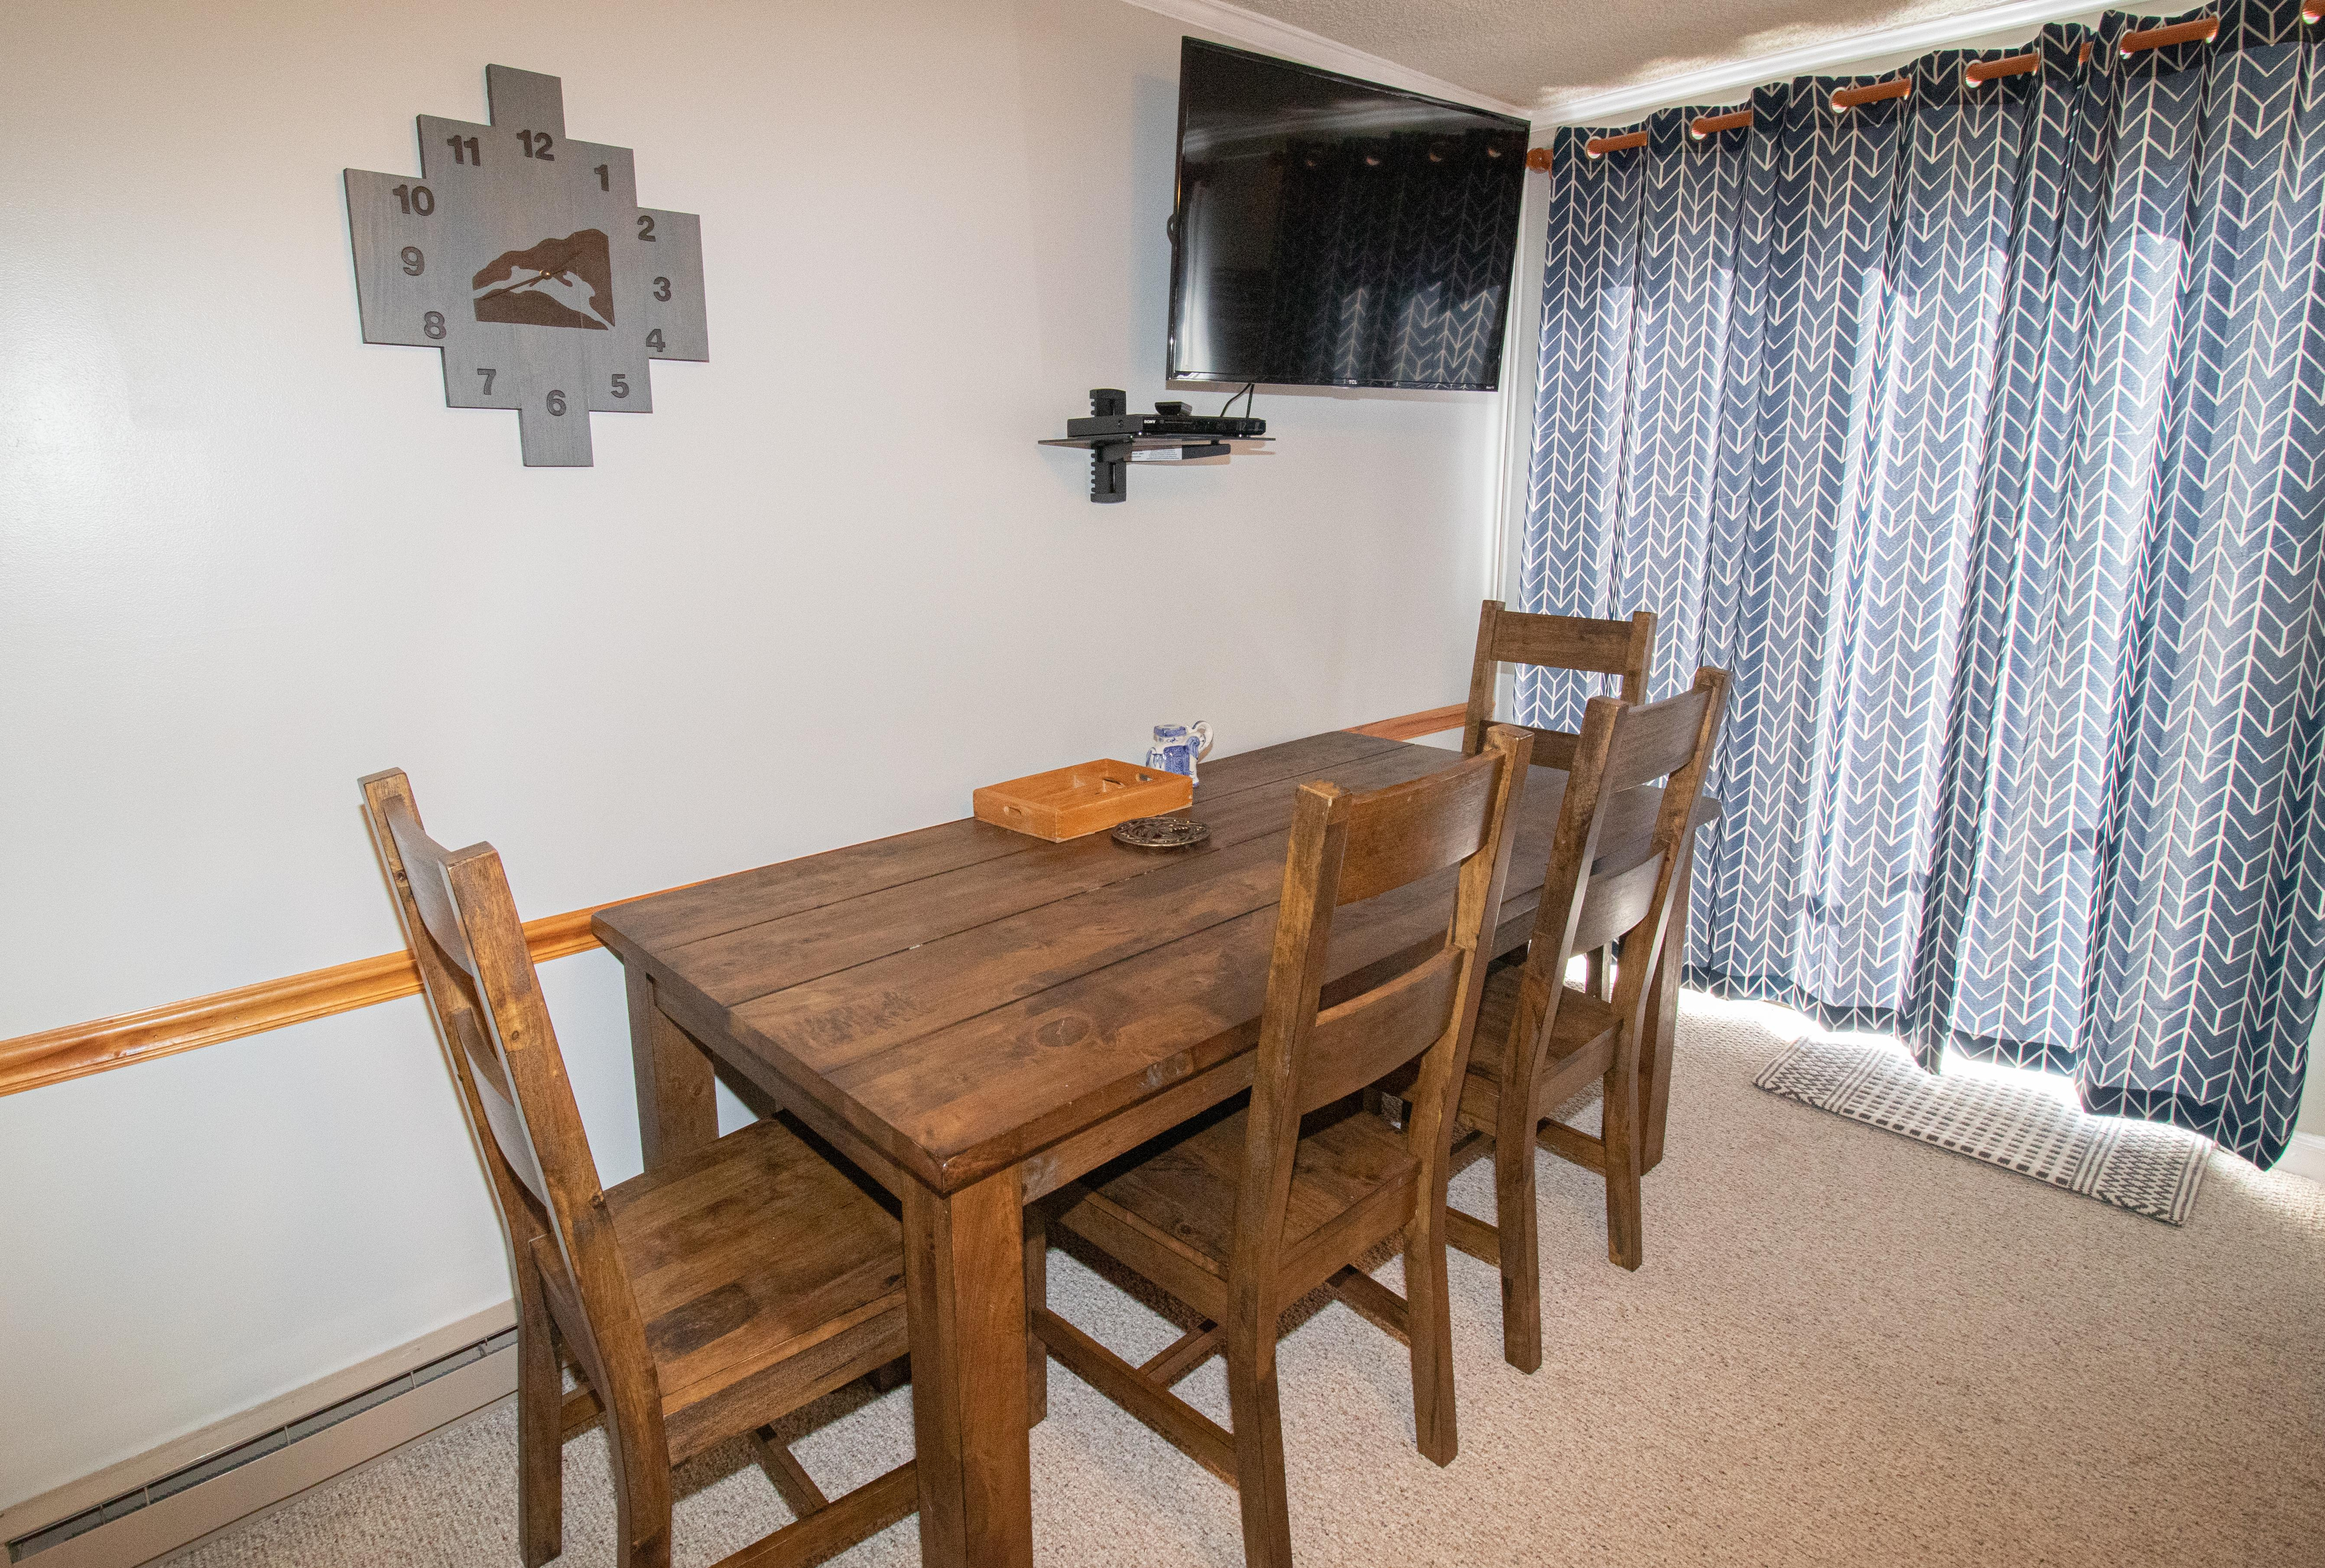 Seating for four (4) guests on brand new kitchen table (January 2019)